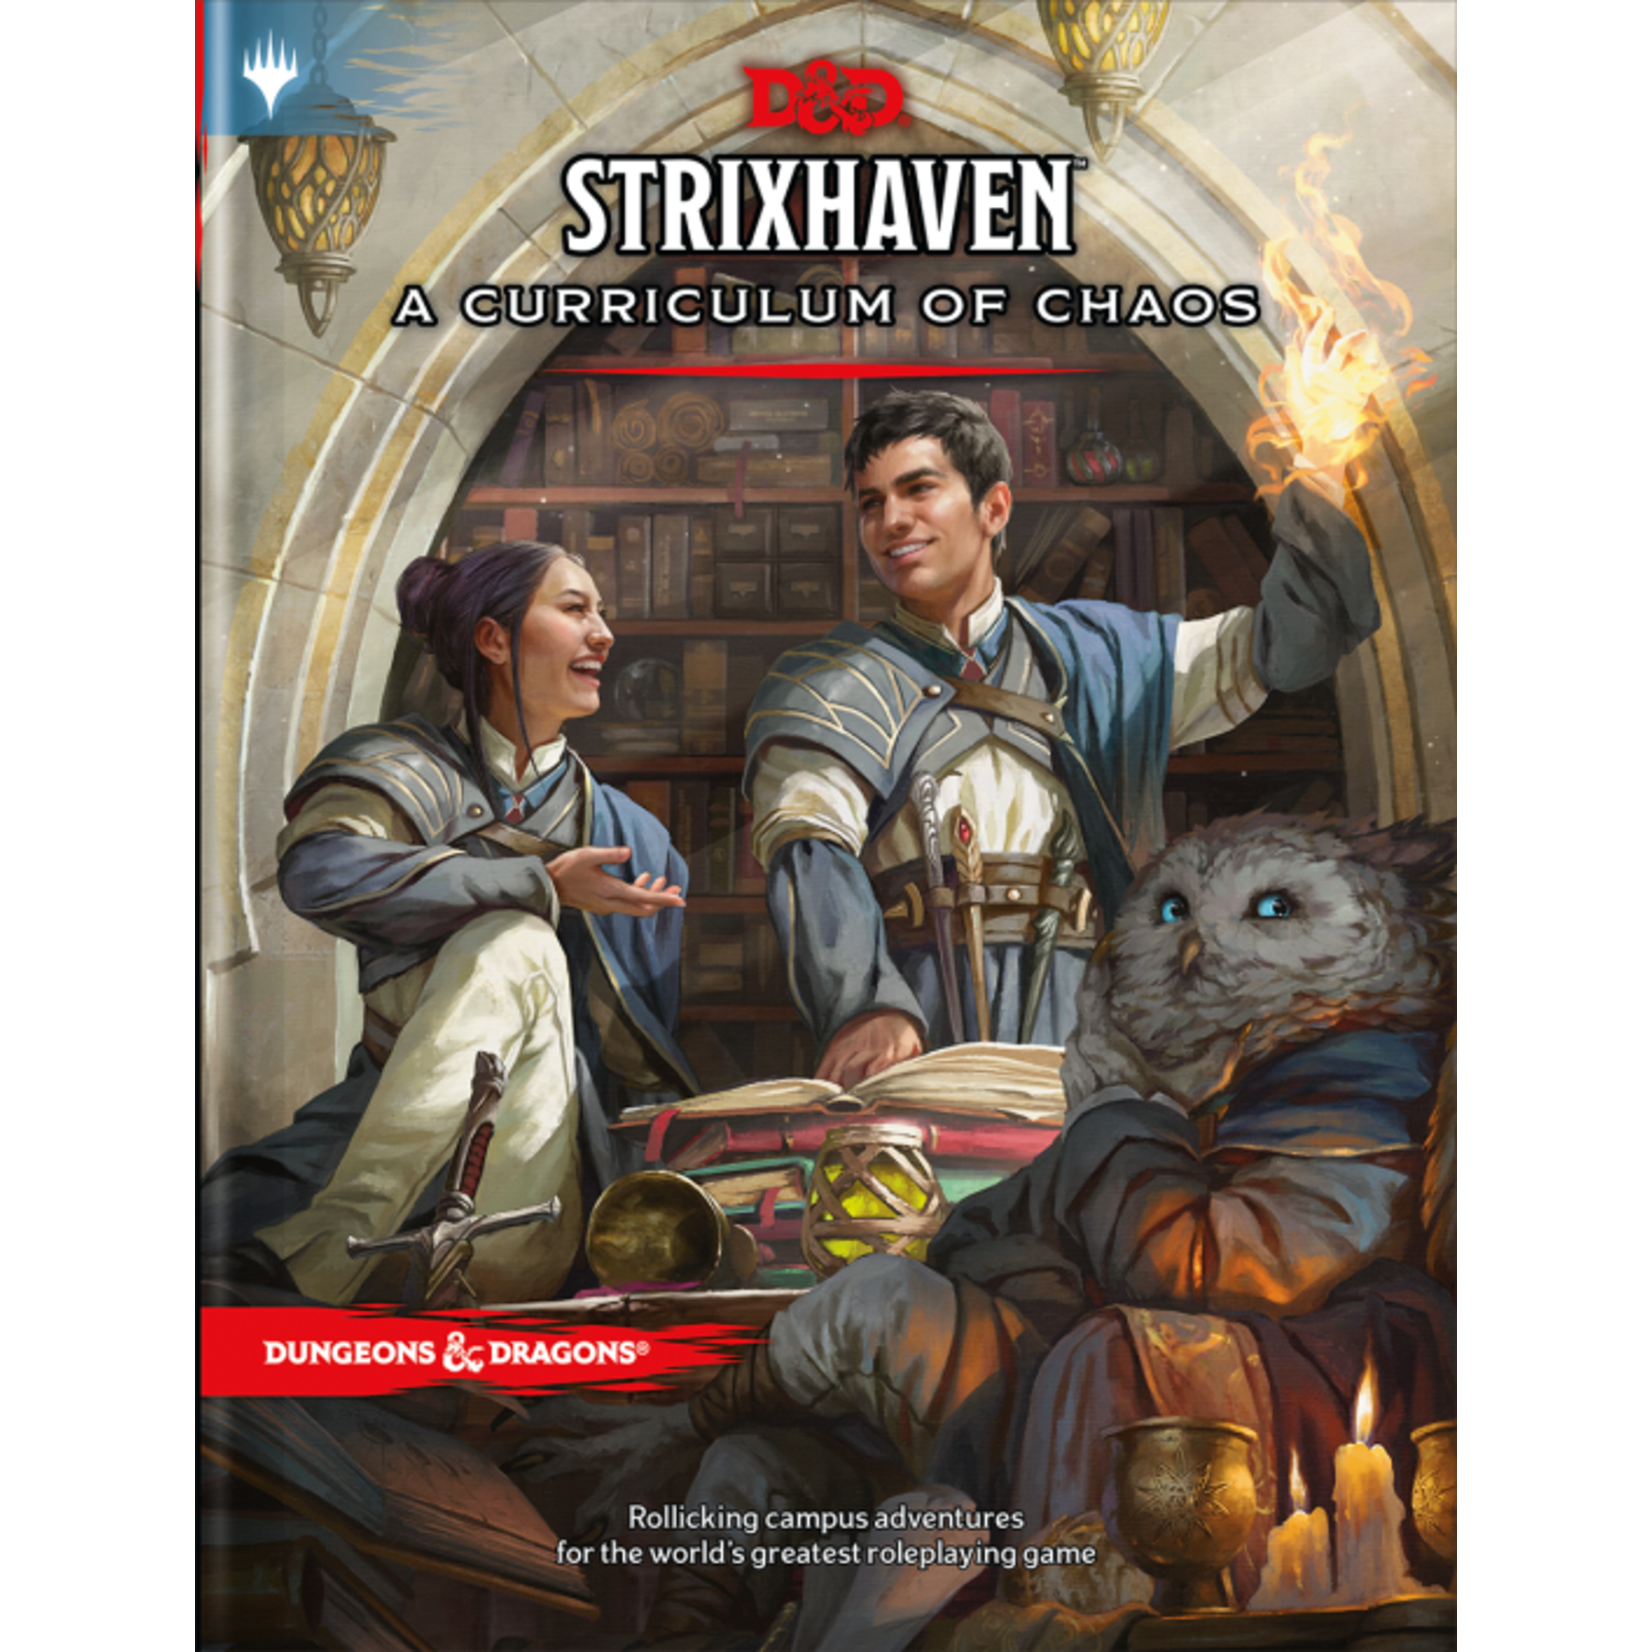 PRE-ORDER Dungeons and Dragons RPG: Strixhaven - Curriculum of Chaos